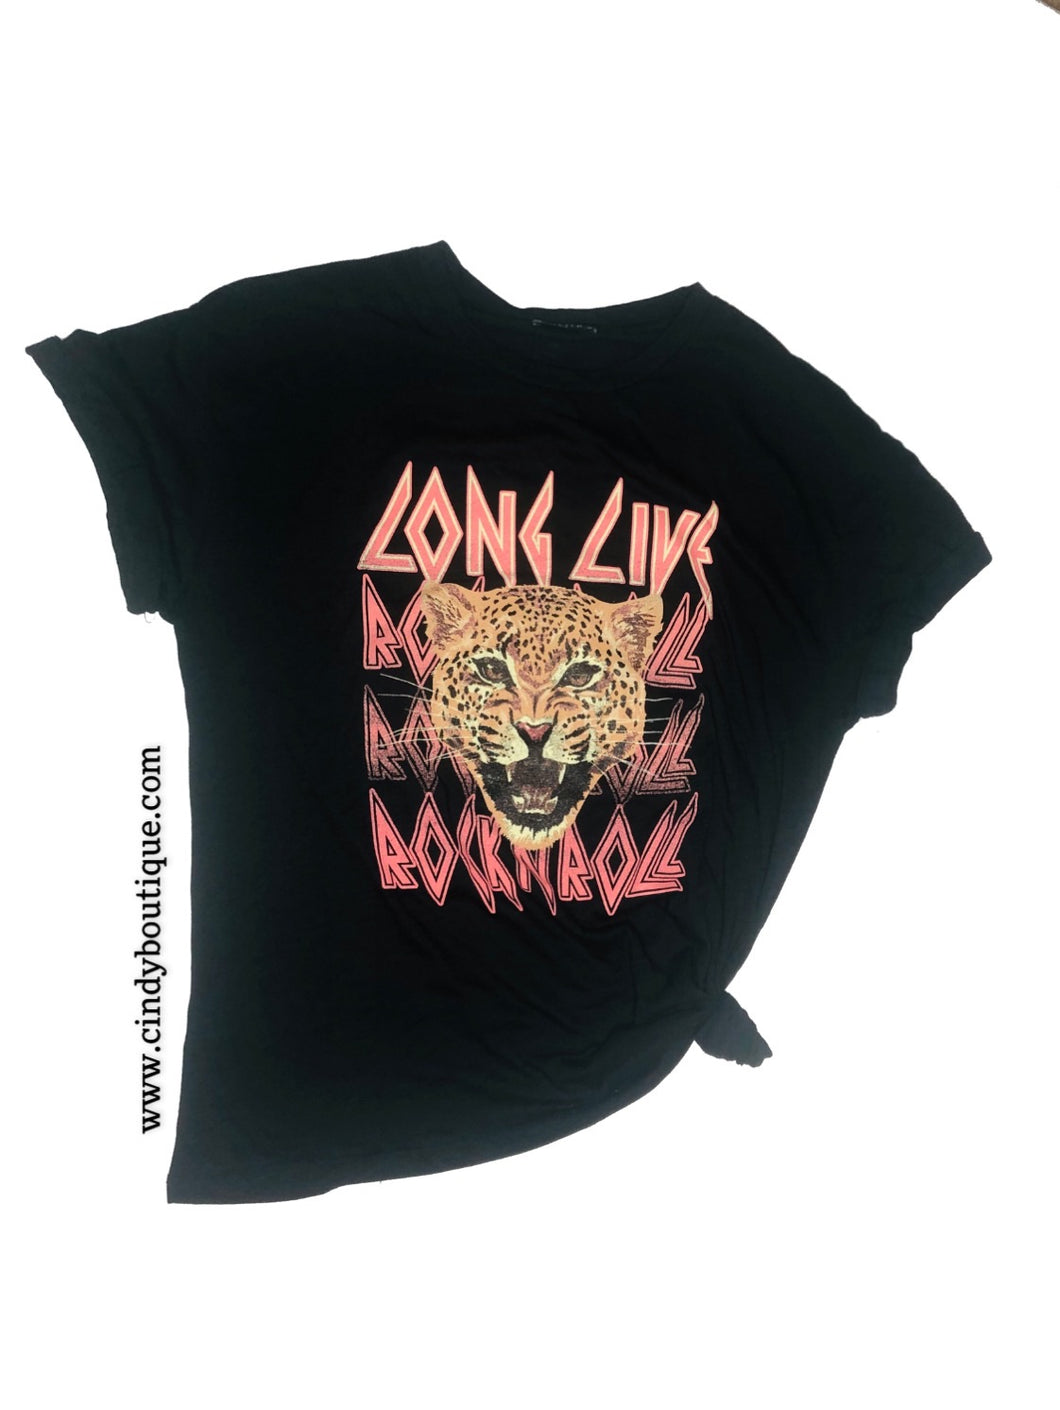 Black cotton Rocker tee with pink letters that say Long Live Rock n roll. Short sleeve tee with rolled sleeve.